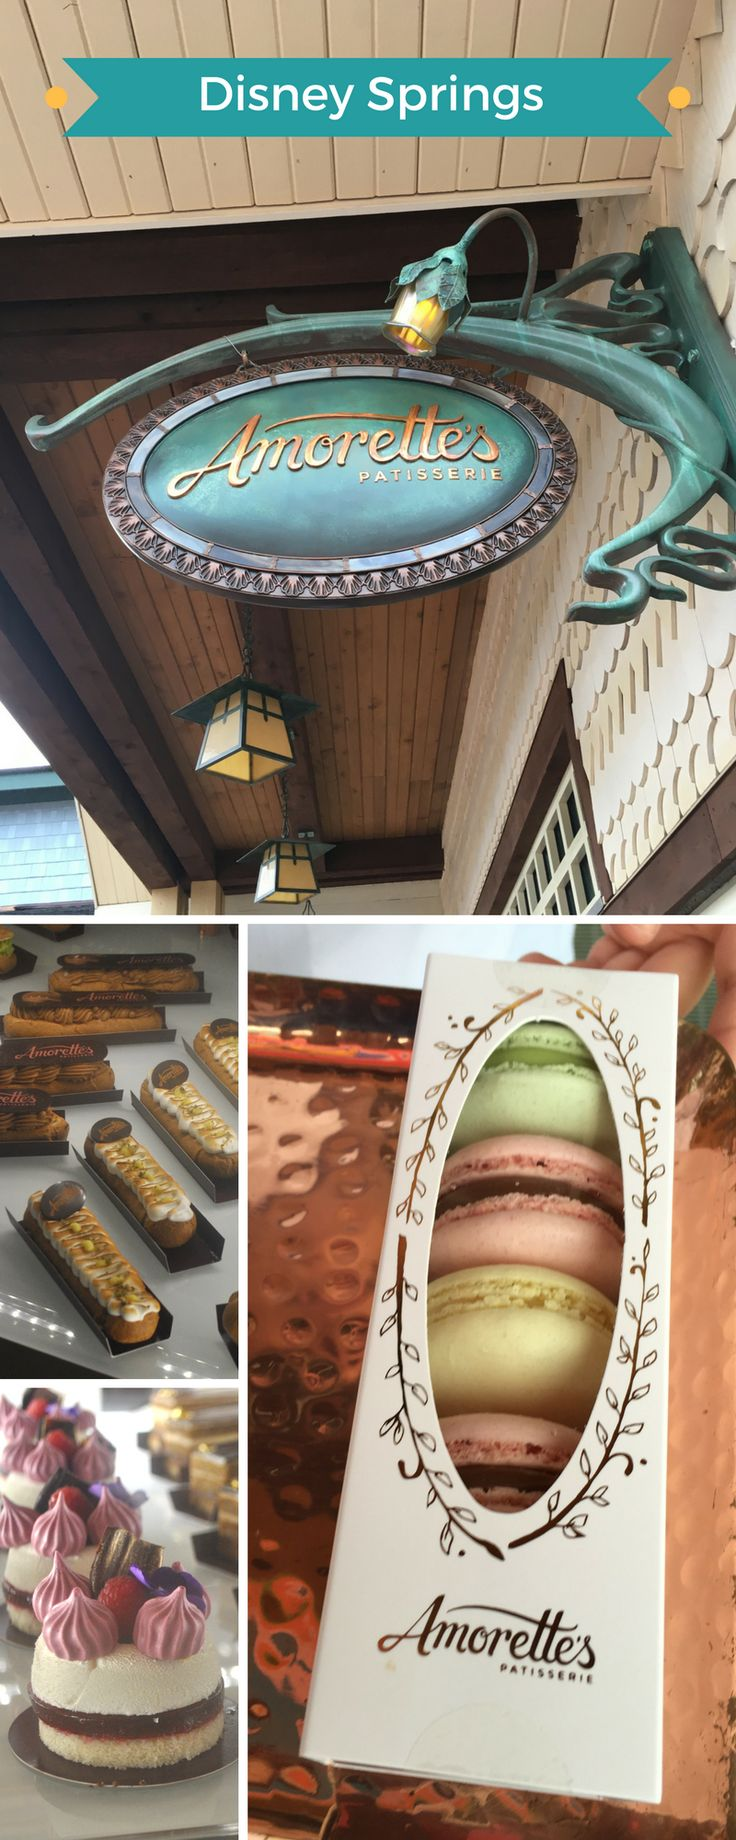 A must stop at Disney Springs! Amorette's Patisserie!